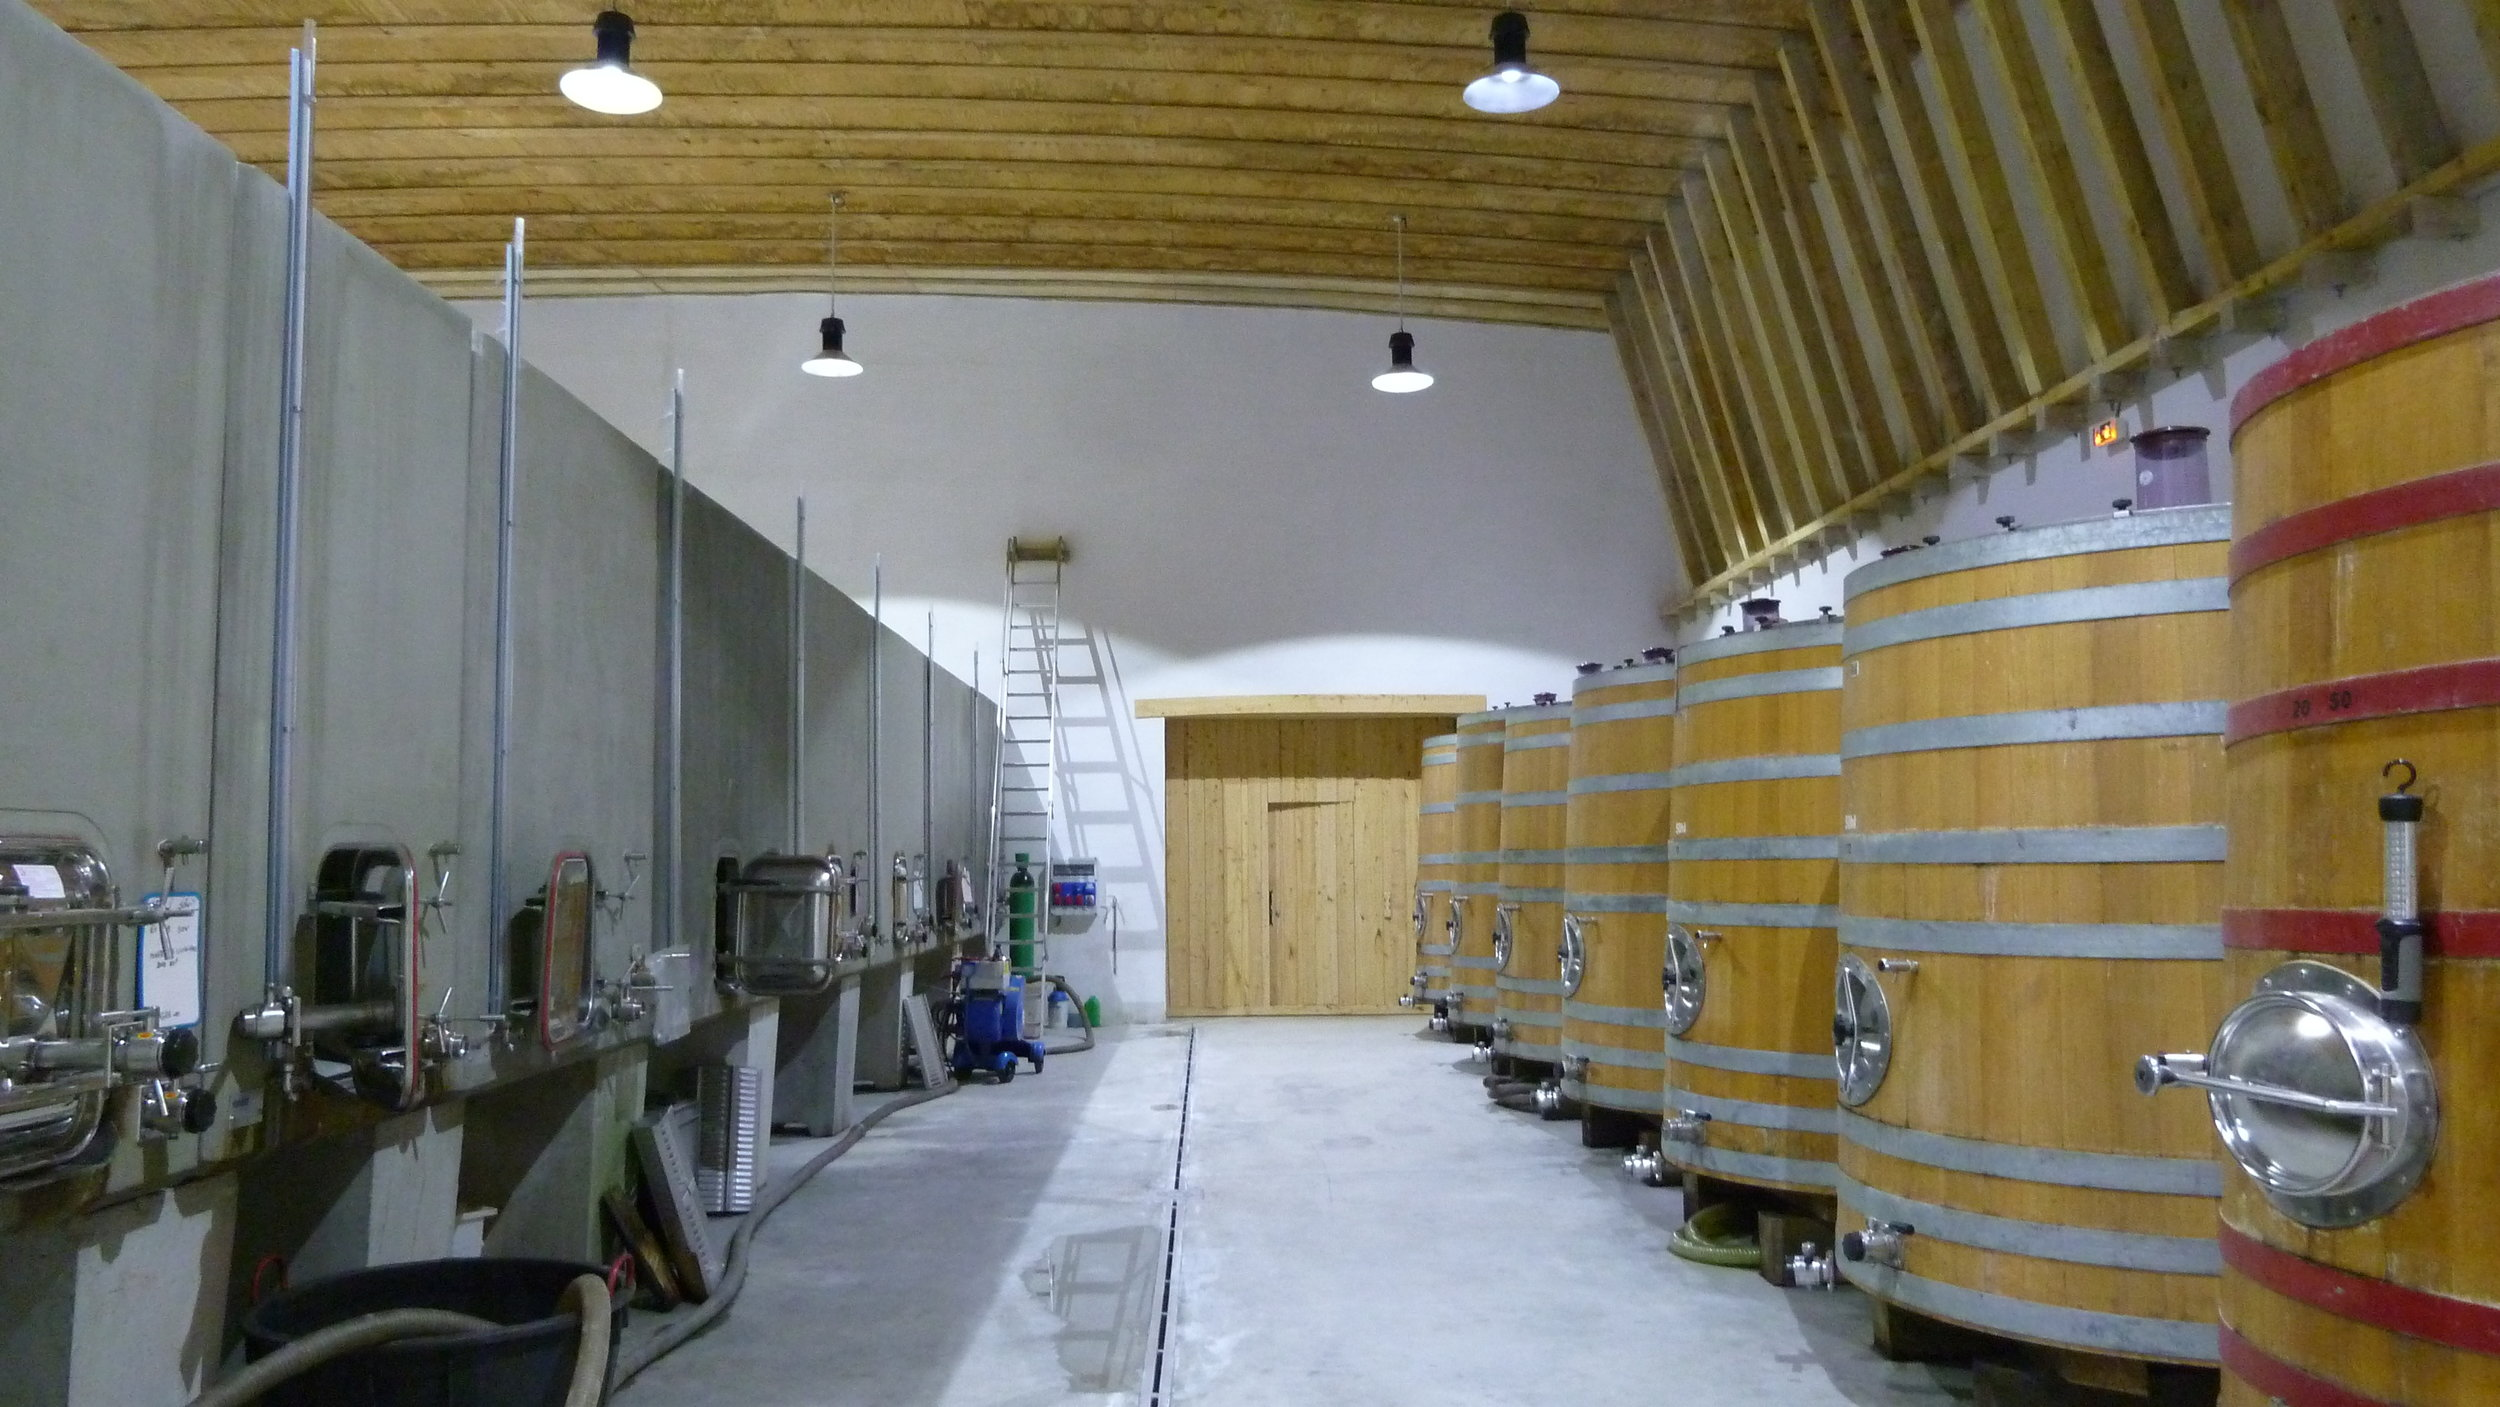 Inside Vinification cellar - Jacques Herviou.JPG